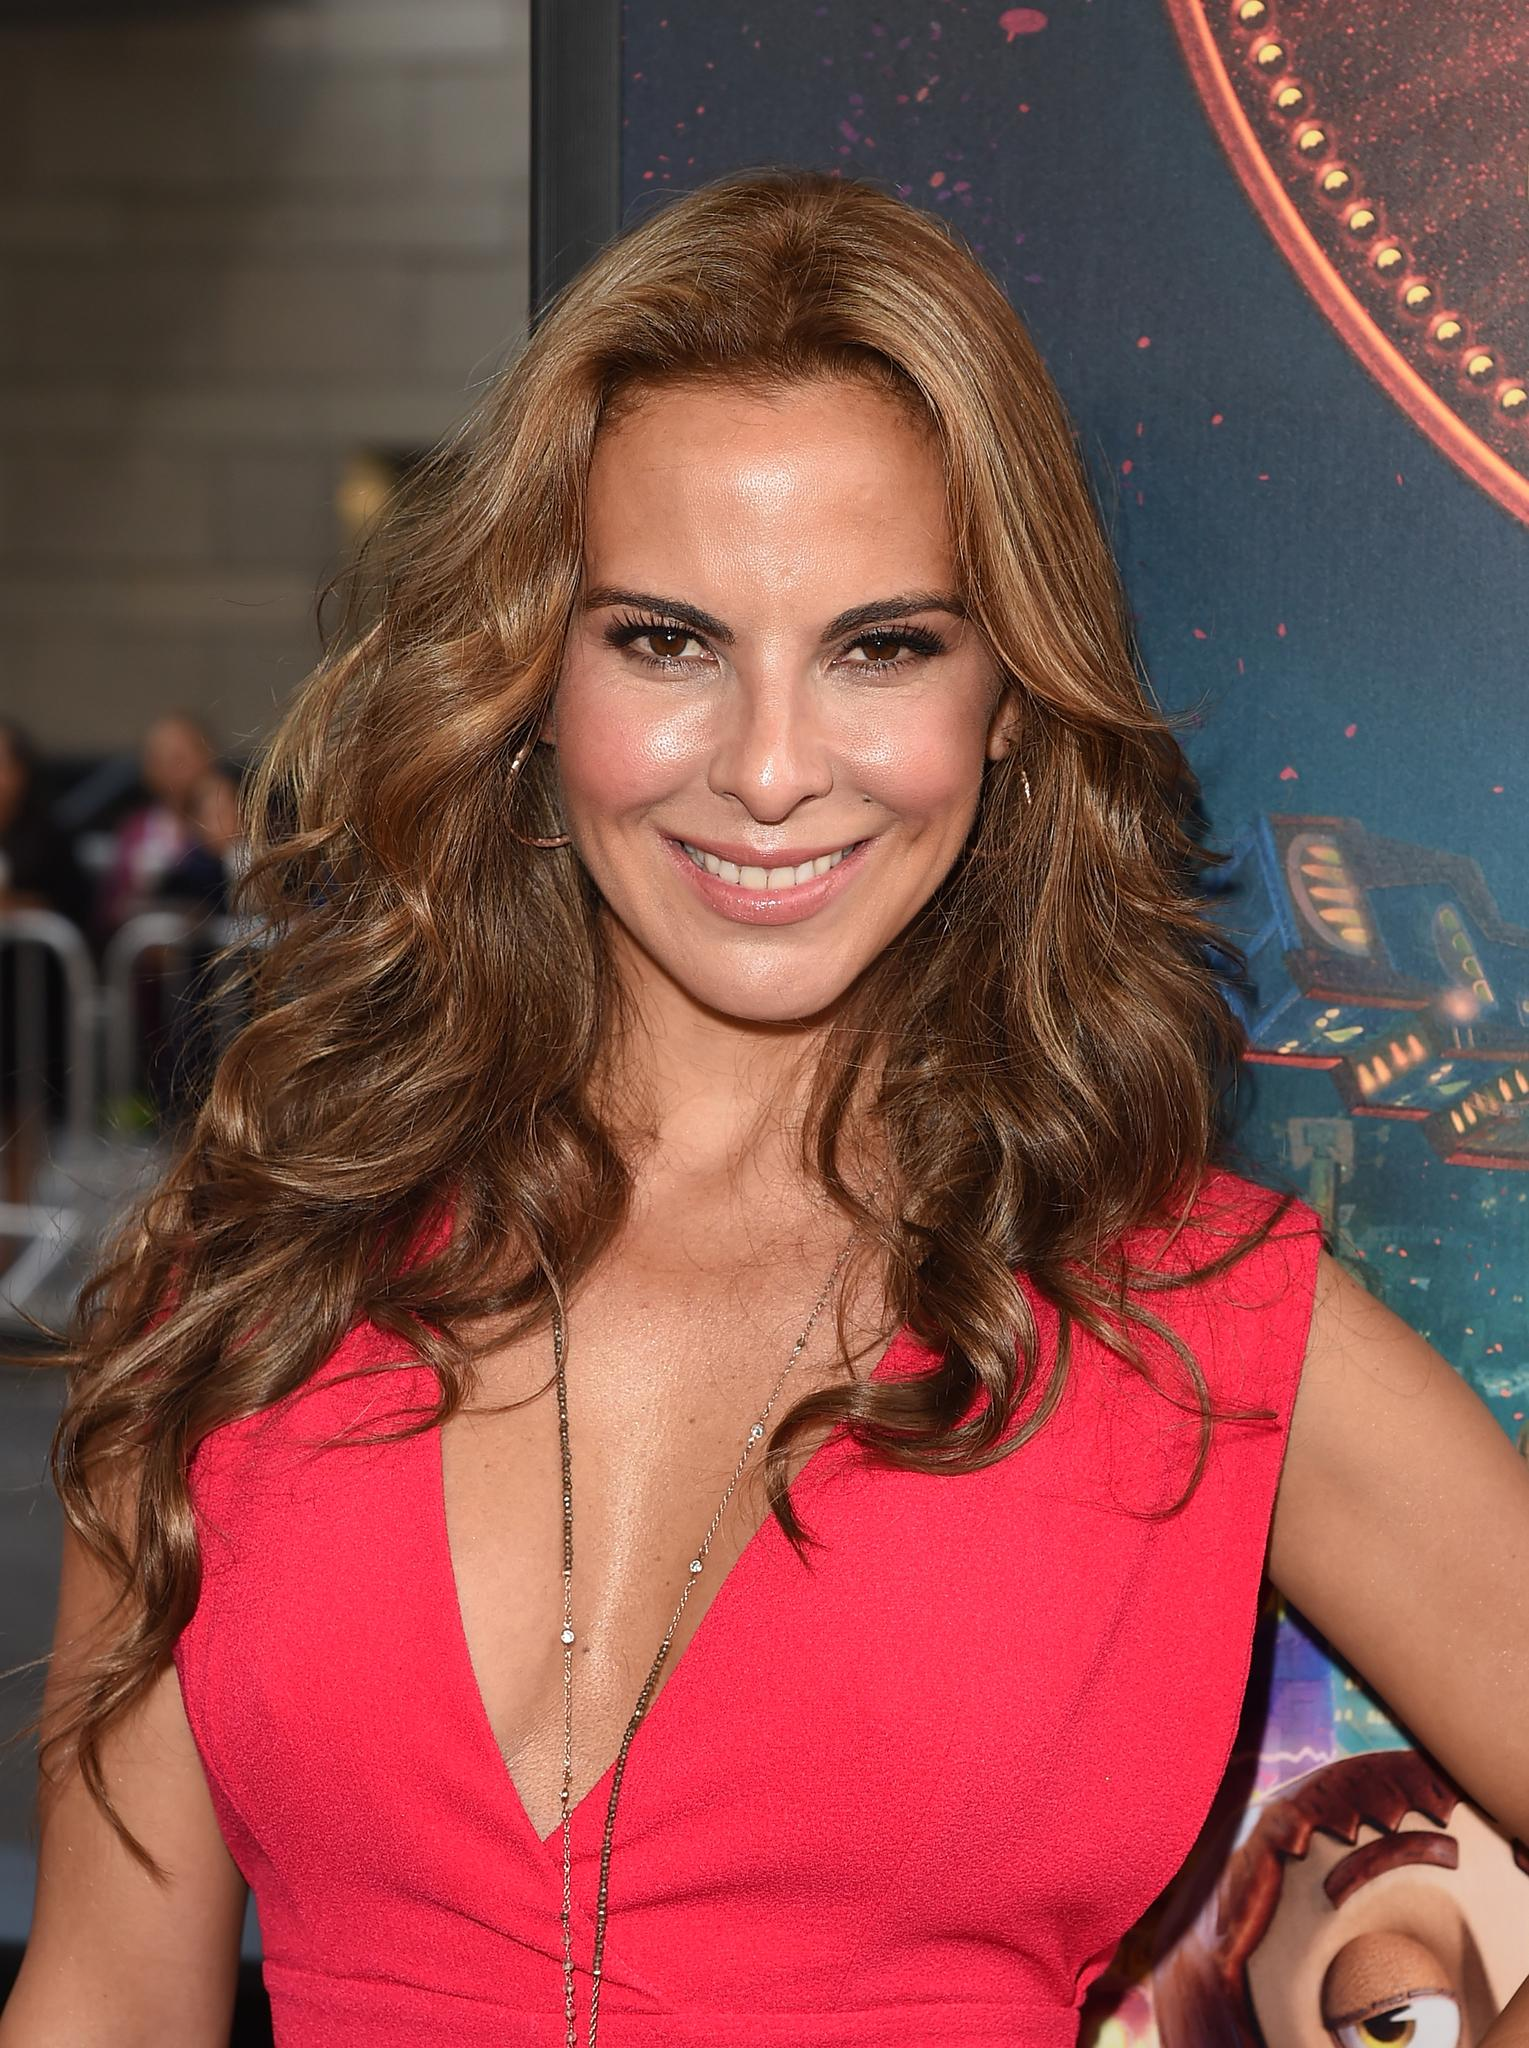 Kate del Castillo naked (91 photo), Pussy, Fappening, Instagram, in bikini 2017